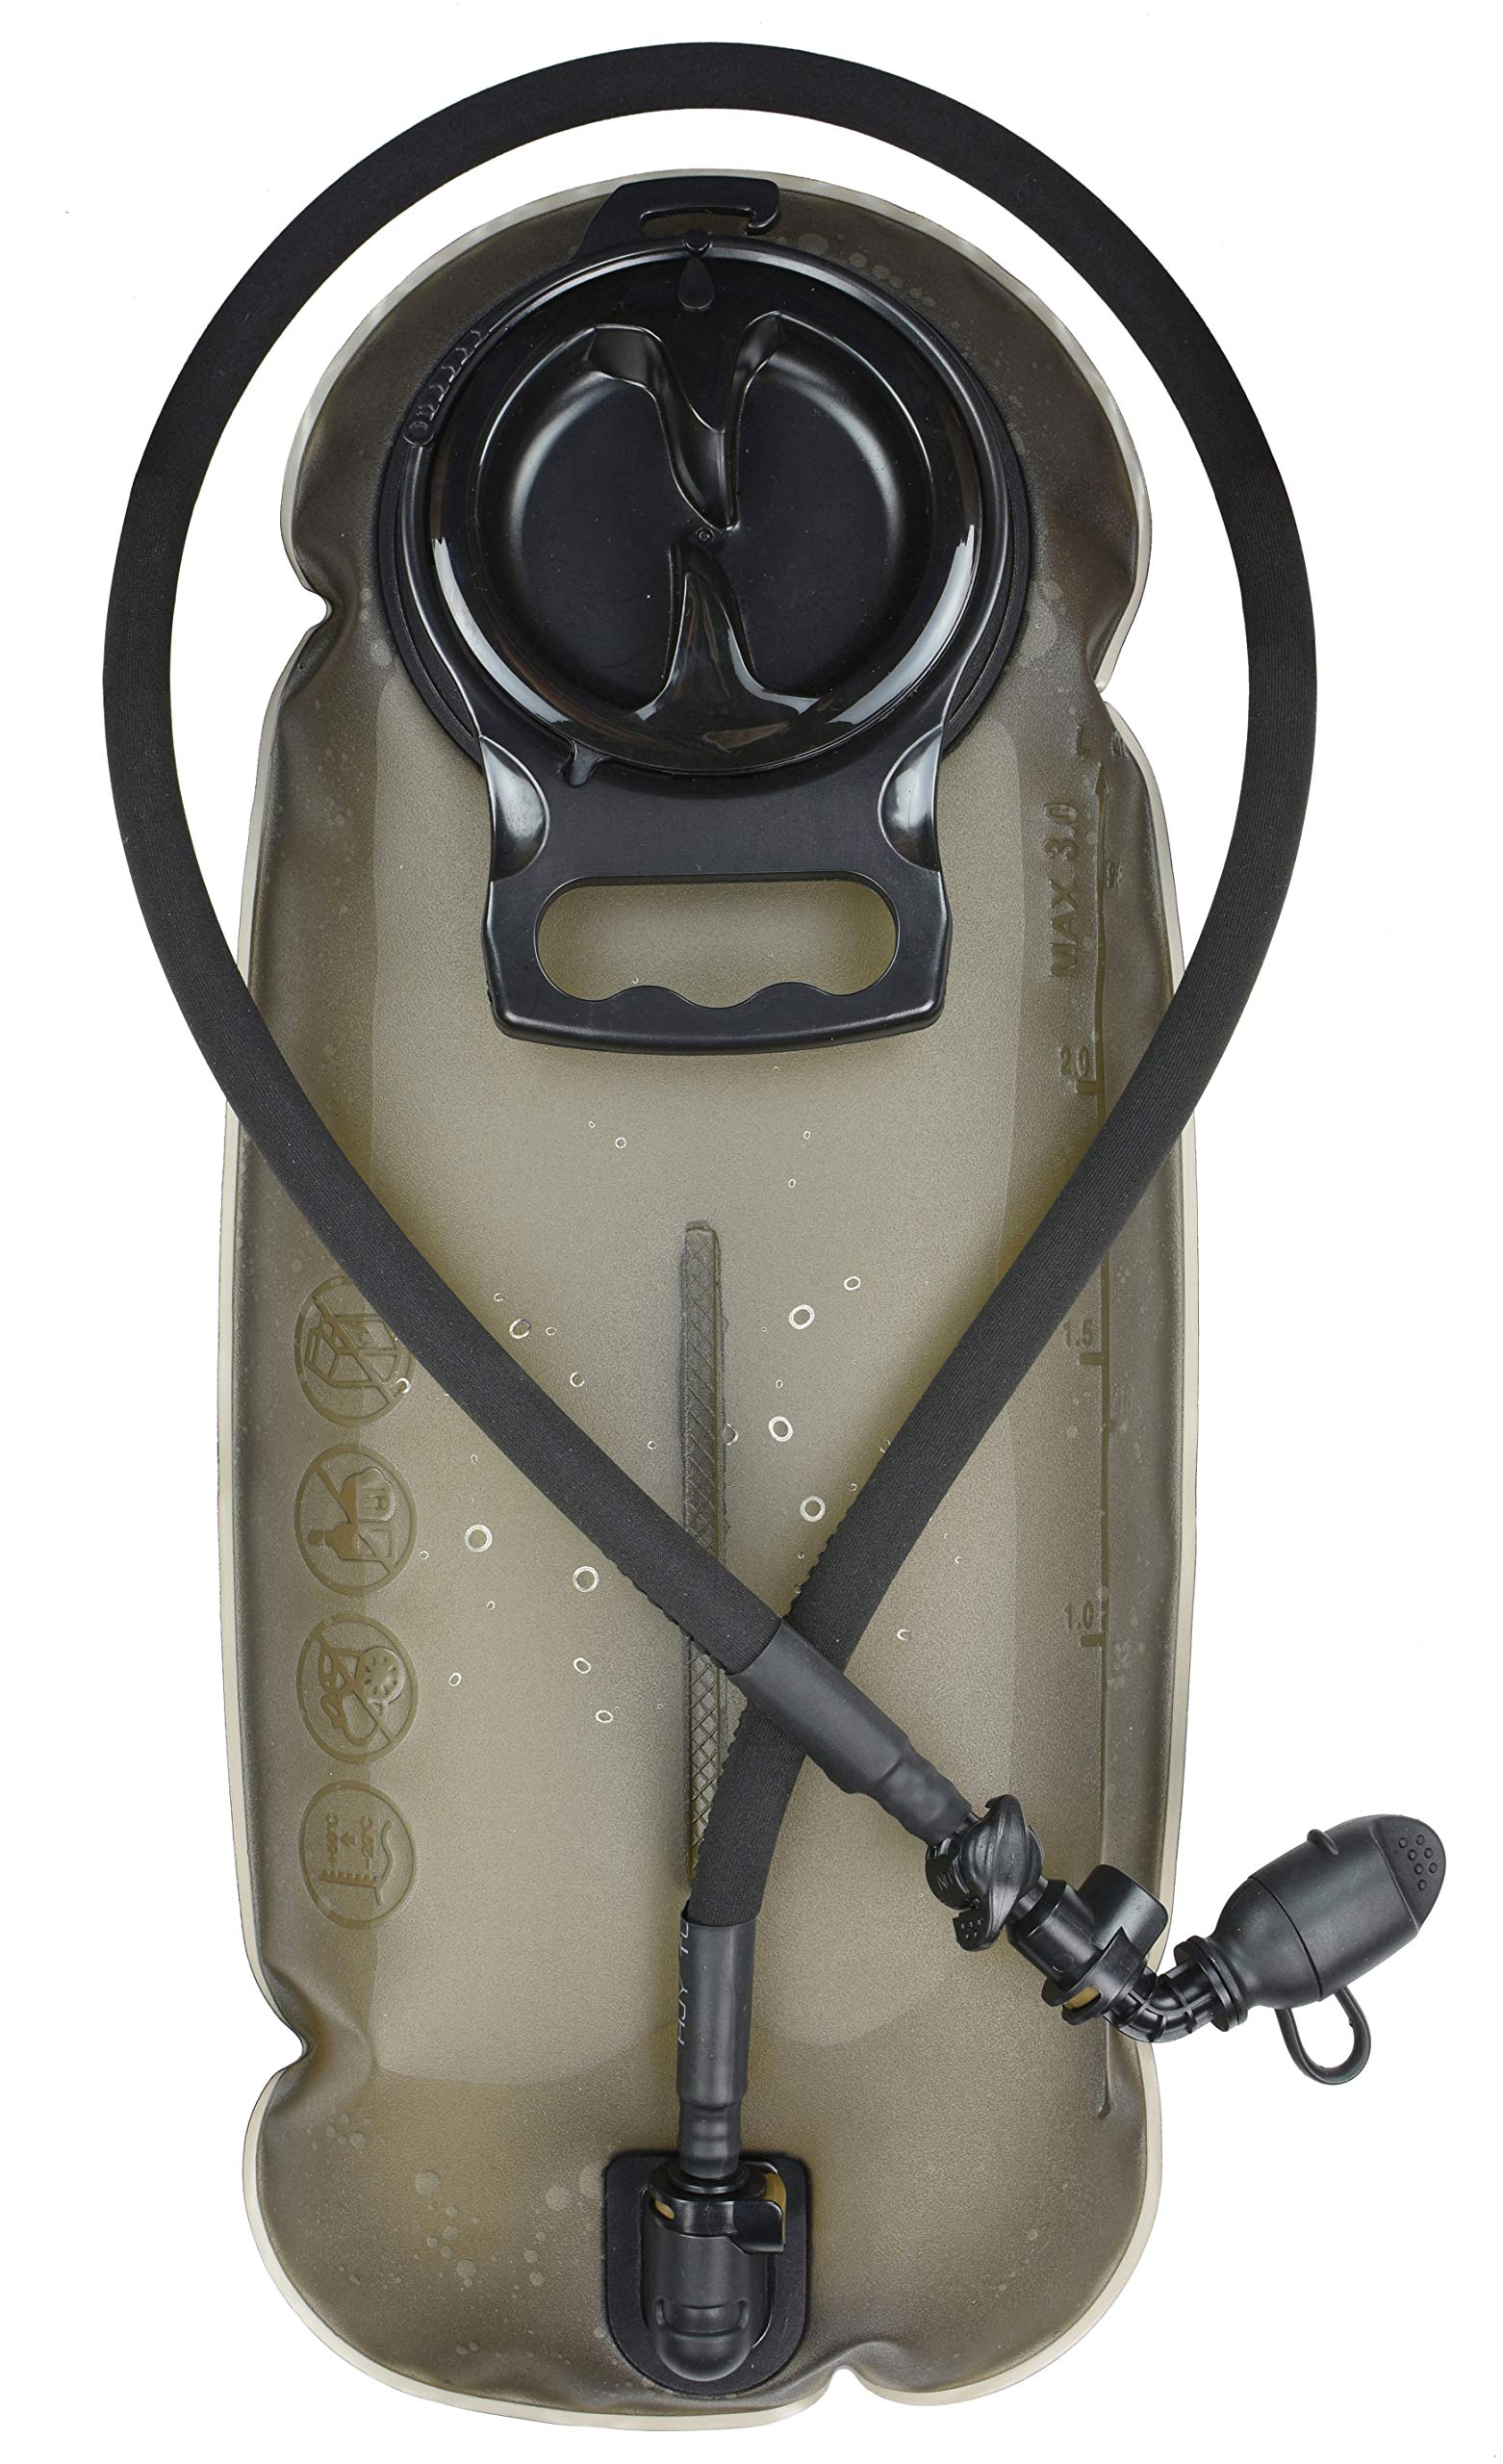 MARCHWAY 2L/2.5L/3L Tactical TPU Hydration Bladder, Tasteless BPA Free Water Reservoir Bag with Insulated Tube for Hydration Pack for Cycling, Hiking, Running, Climbing, Biking (New 3L Grey 100oz) by MARCHWAY